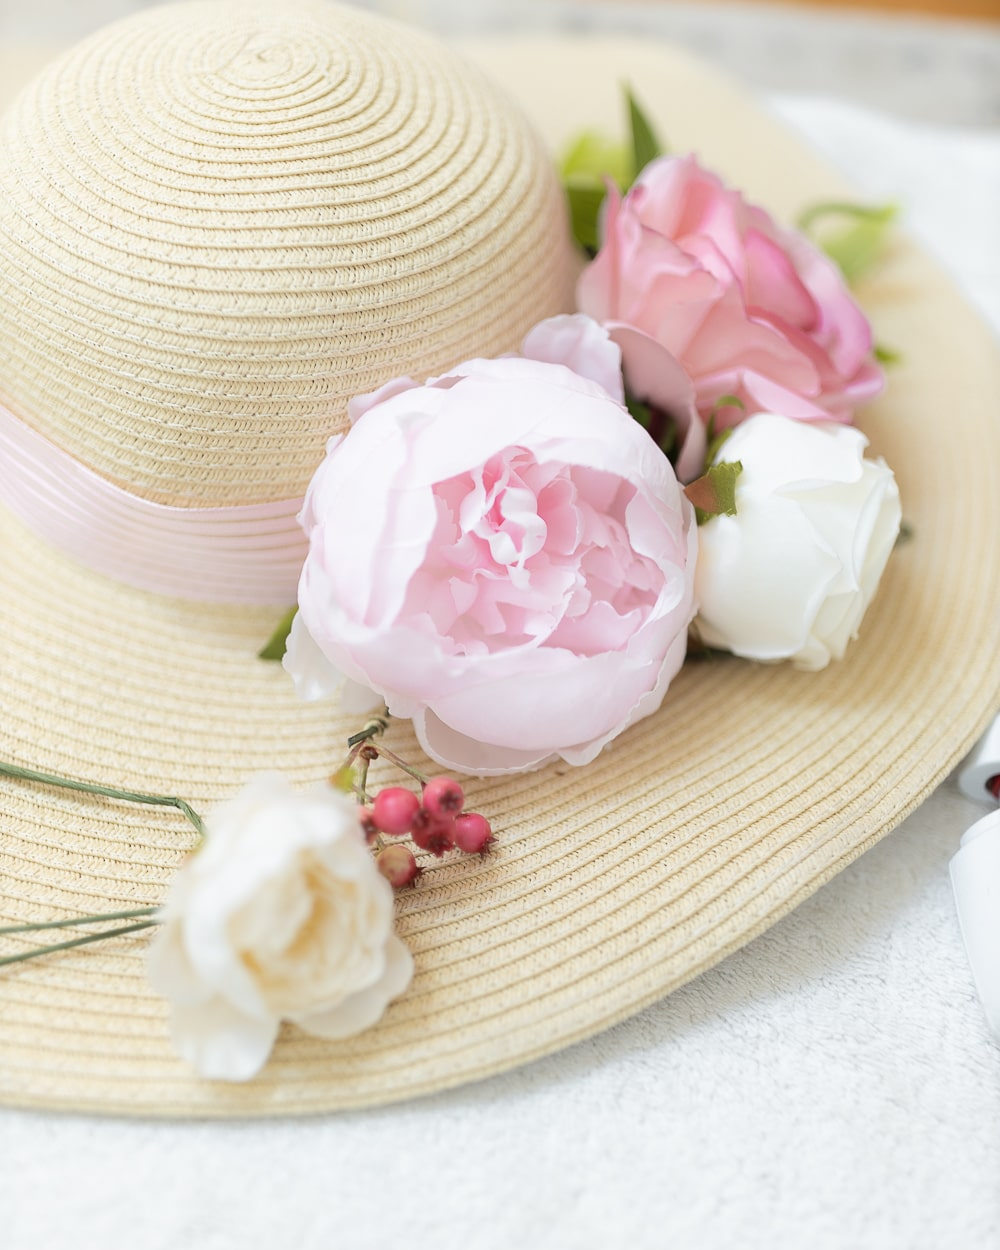 Blogger Stephanie Ziajka shows how to make a Kentucky Derby hat on Diary of a Debutante